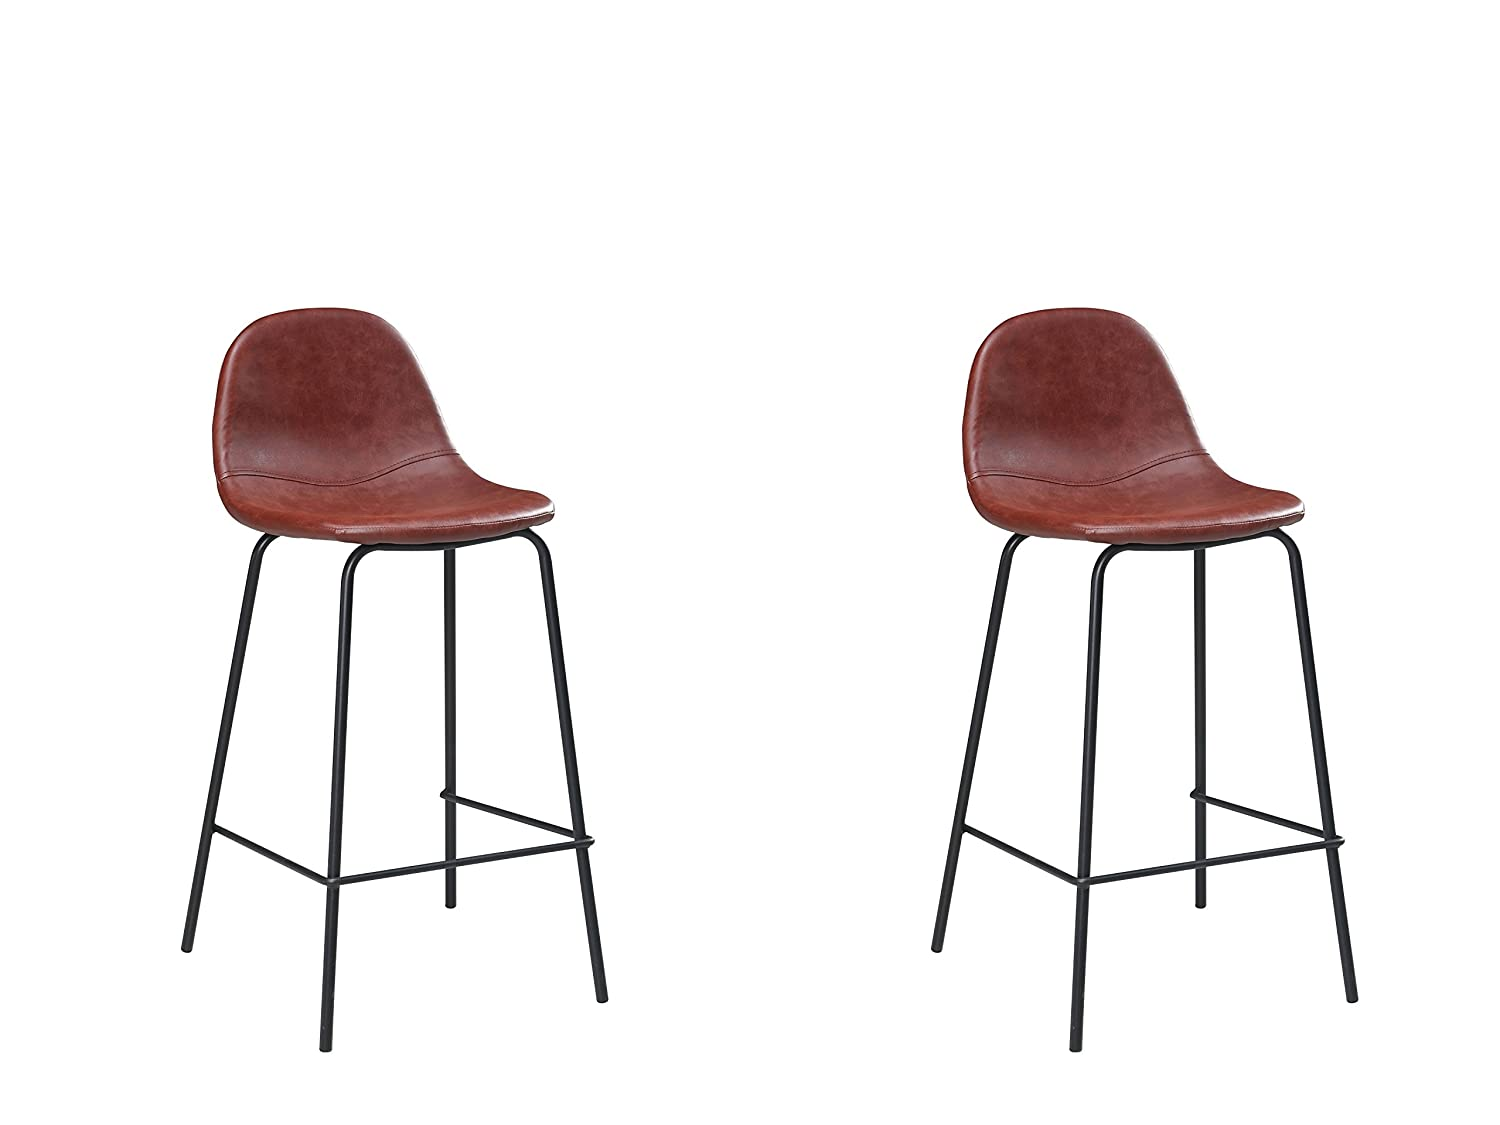 Meubles House Jose Modern Kitchen Island Counter Stool 26-Inch H-Red PU (Set of Two), Single, Reddish Brown S2-DC9013-2R